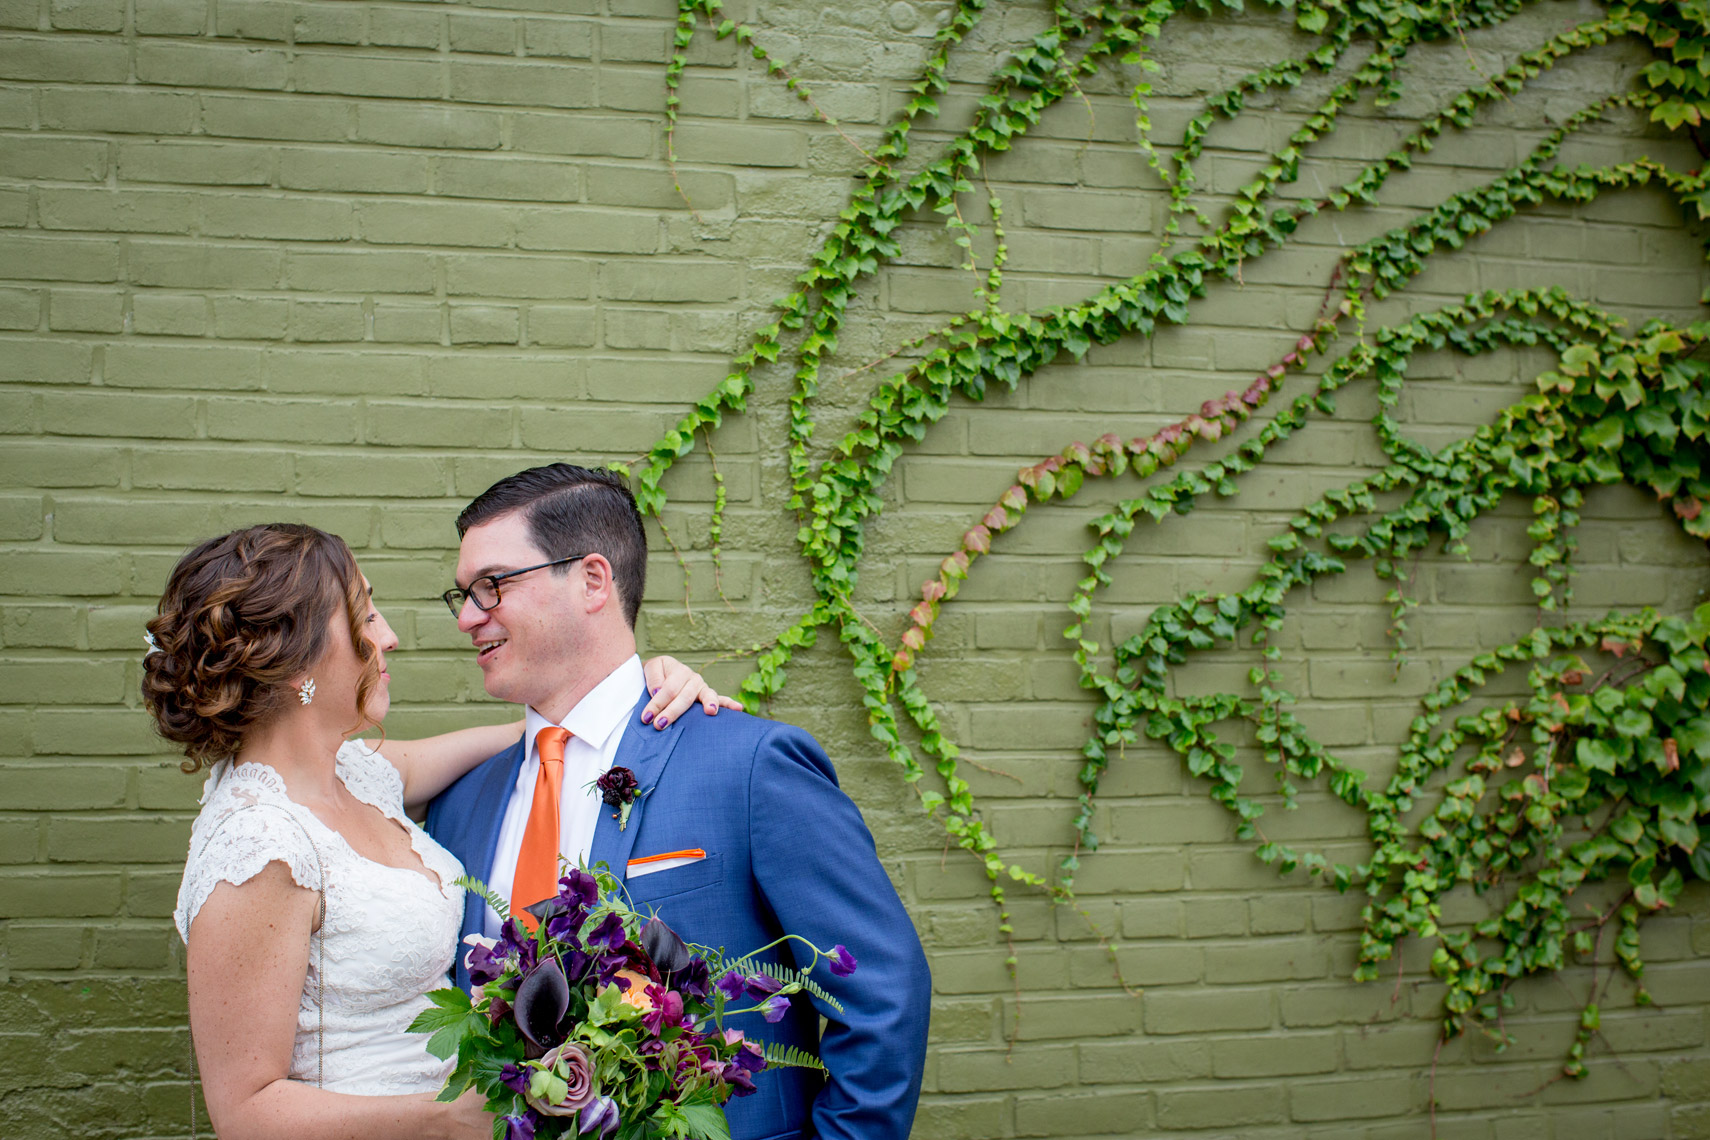 wedding-bride-groom-The-Green_Building-Brooklyn-Gowmanus-sarma-and-co